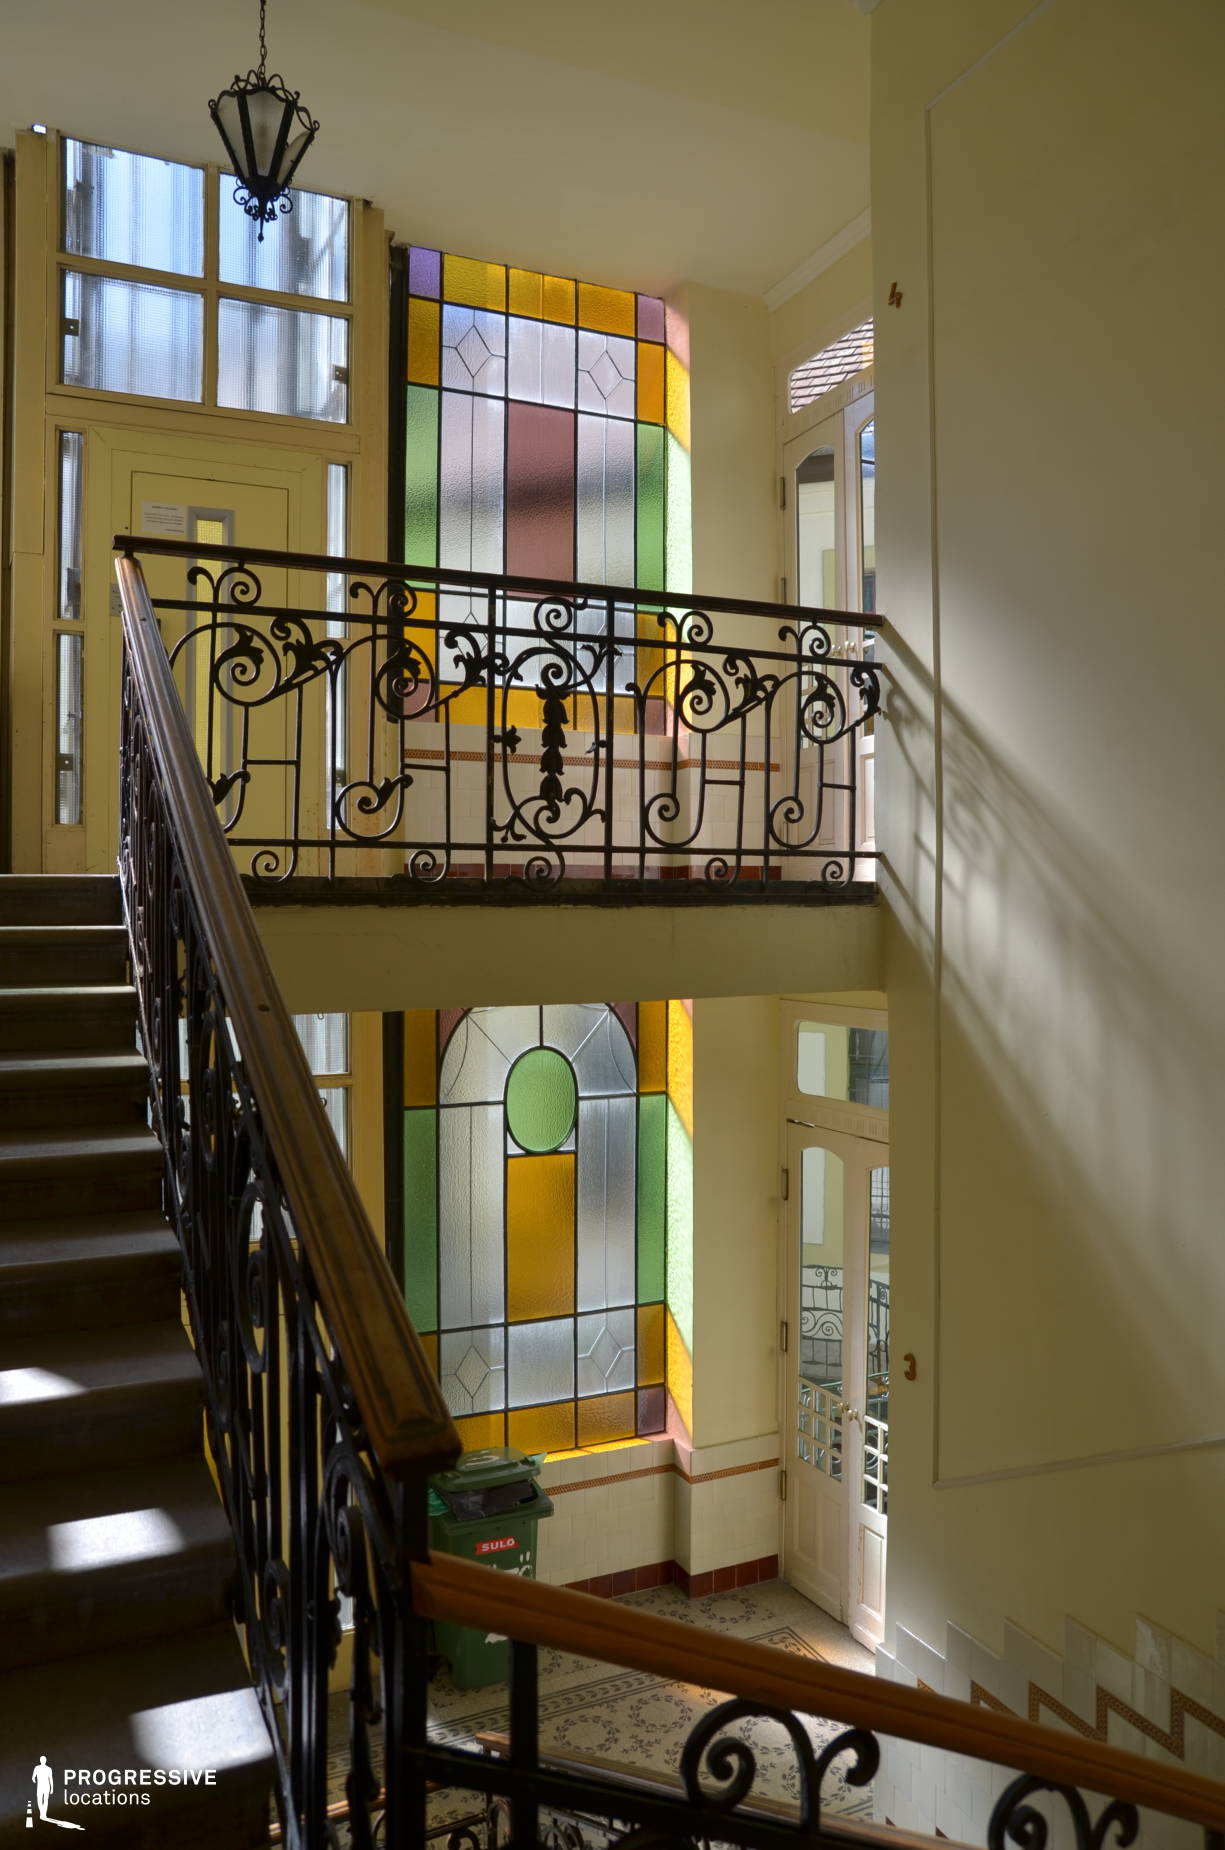 Locations in Budapest: Colorful Glass, Suto Street